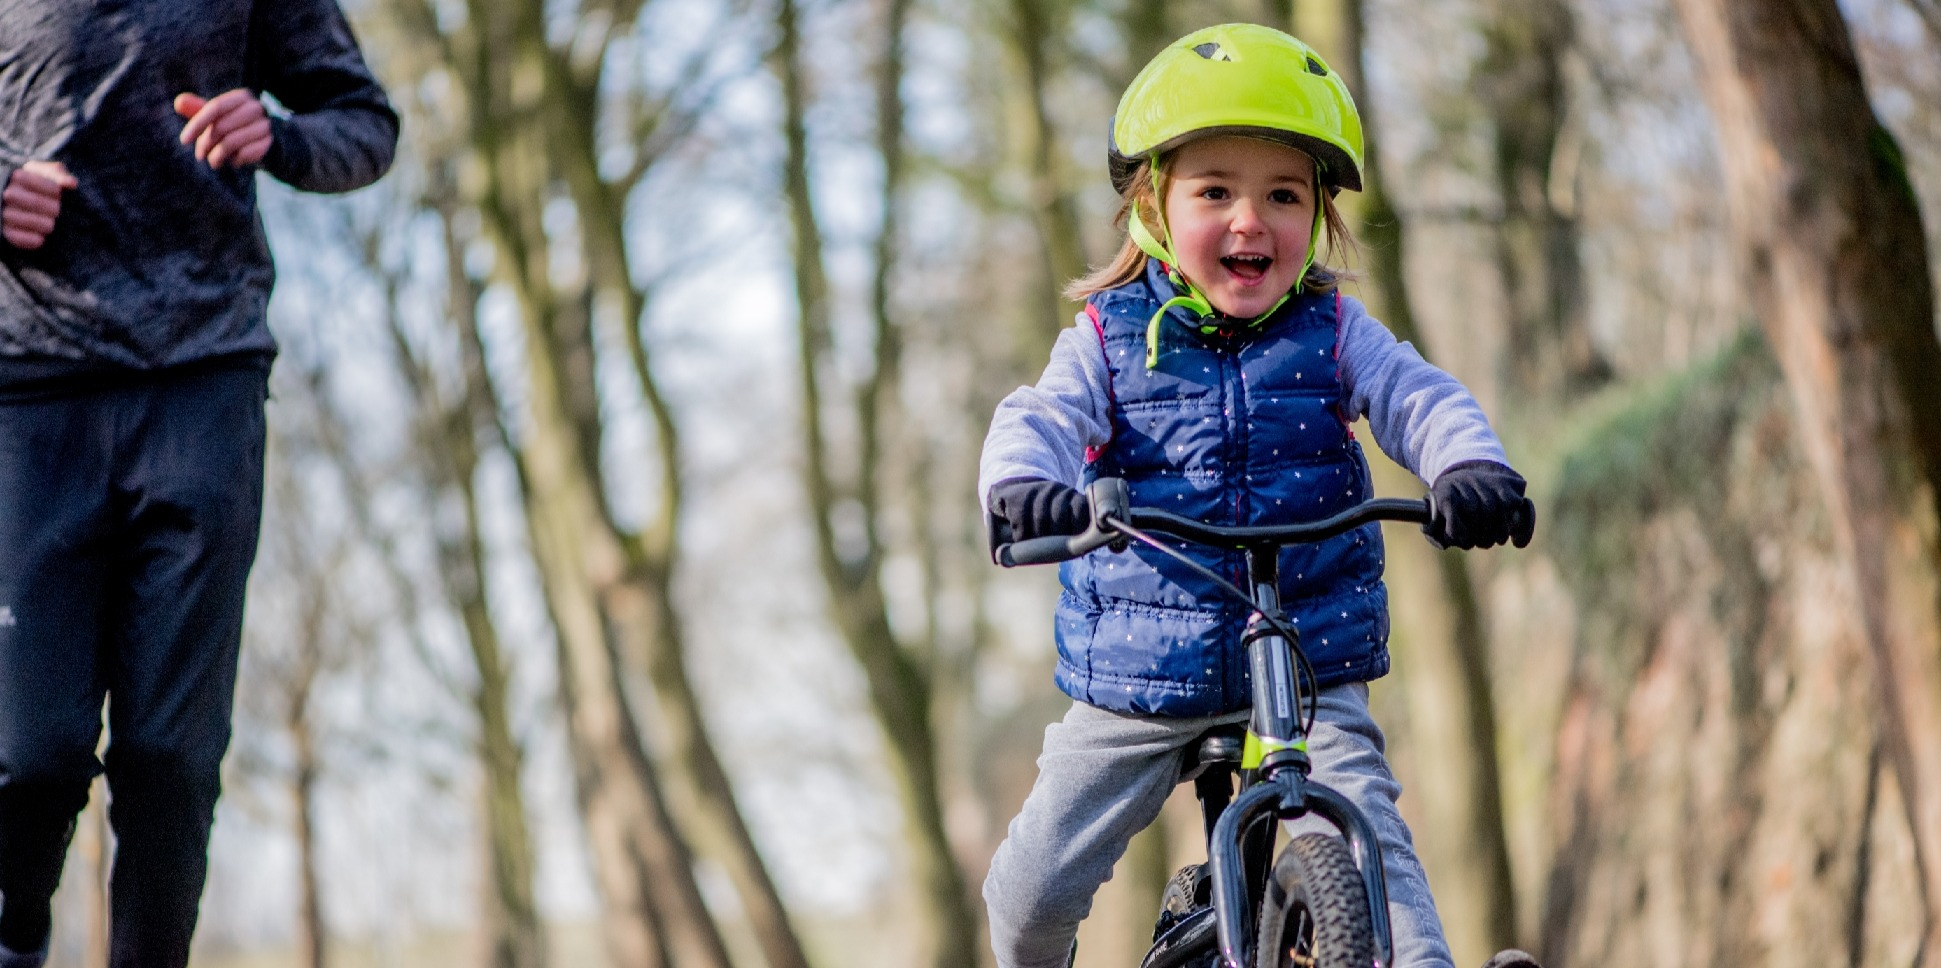 Kids Cycling For Beginners. How Can We Get Started?